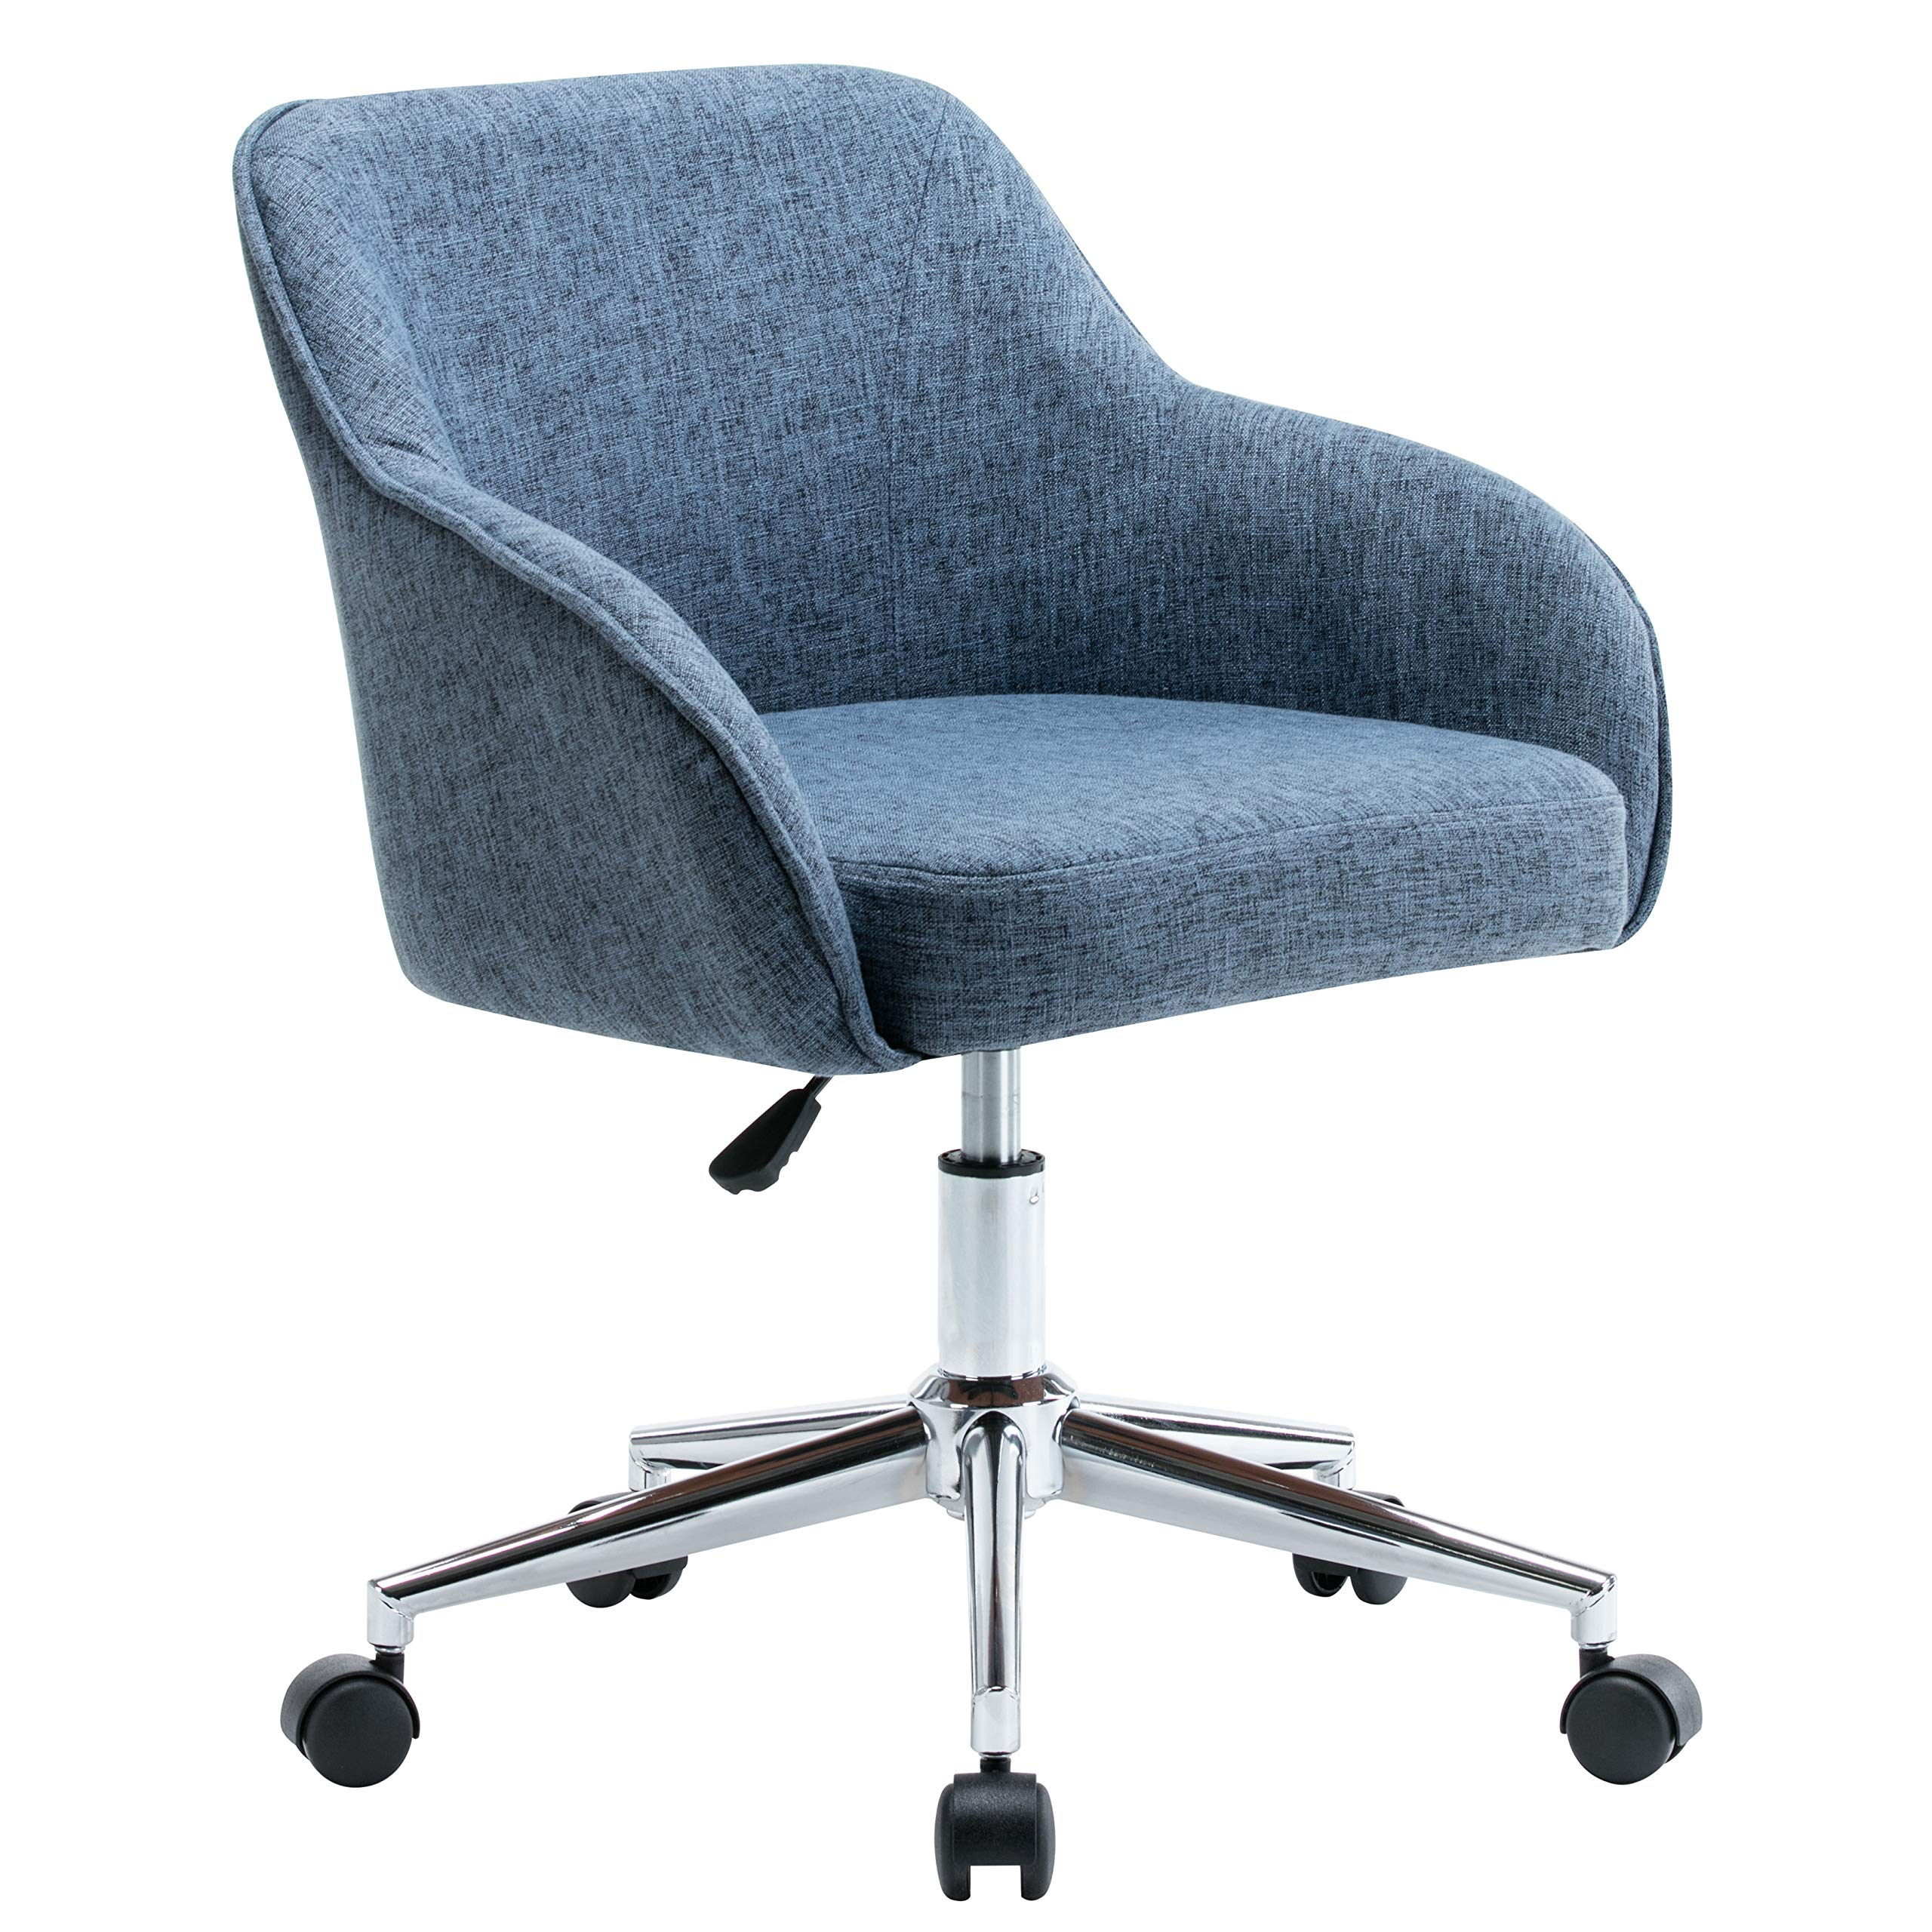 Porthos Home TFC046A BLU Adjustable Height Upholstered Contemporary Swivel Desk Chair with Optional Caster Wheels, Easy Assembly, One Size, Blue by Porthos Home